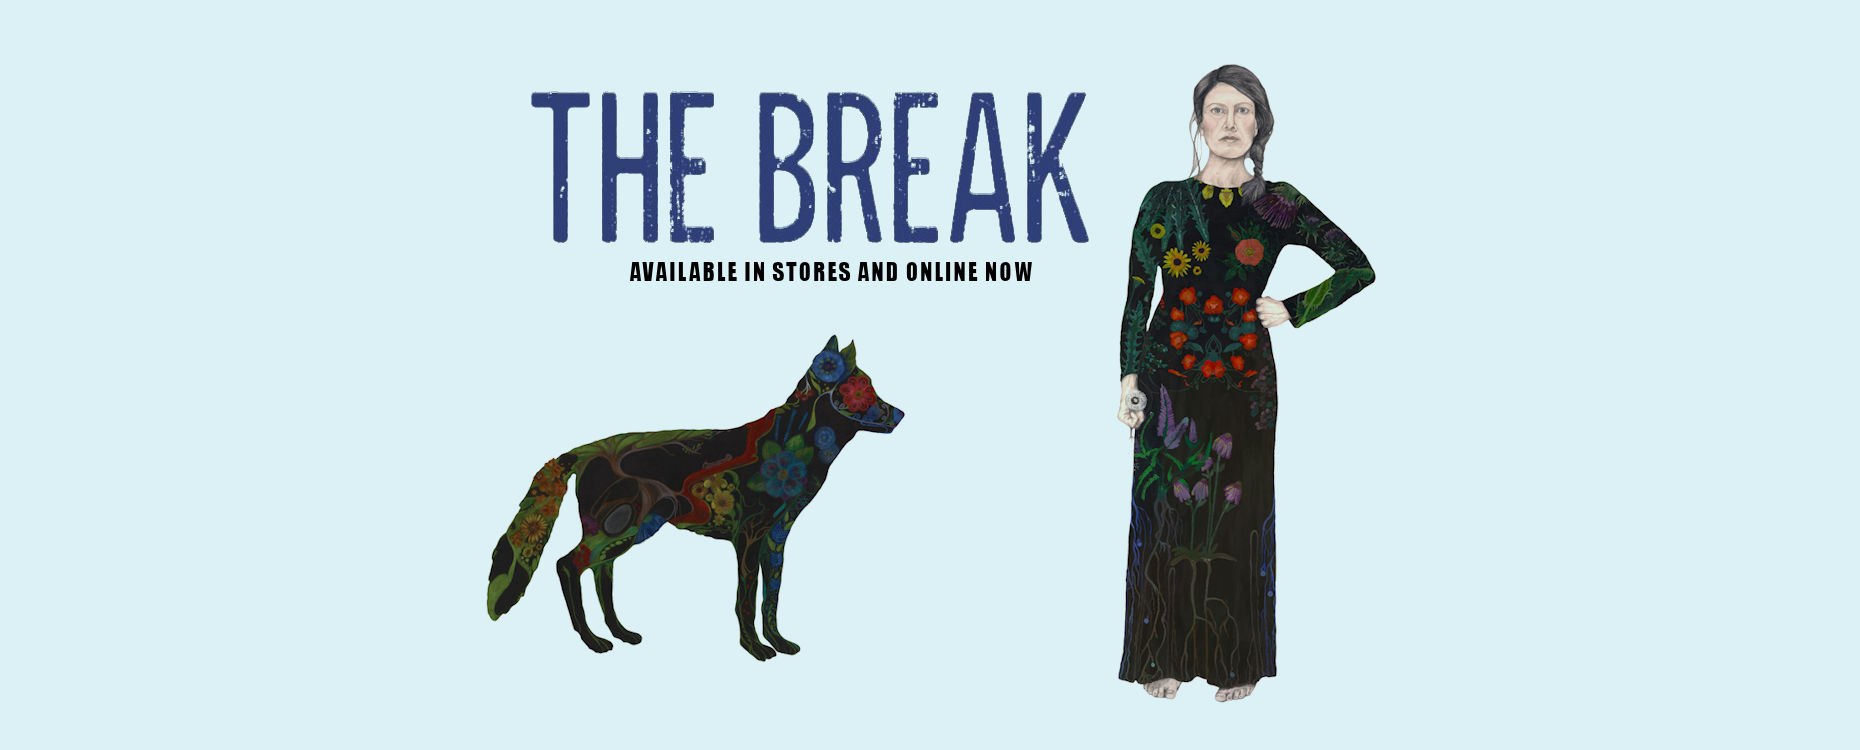 University Of Manitoba Alumni On Twitter Um Alumni Book Club Members Have Selected A Powerful Intergenerational Family Saga As The Next Read The Break By Katherena Vermette A Metis Writer From